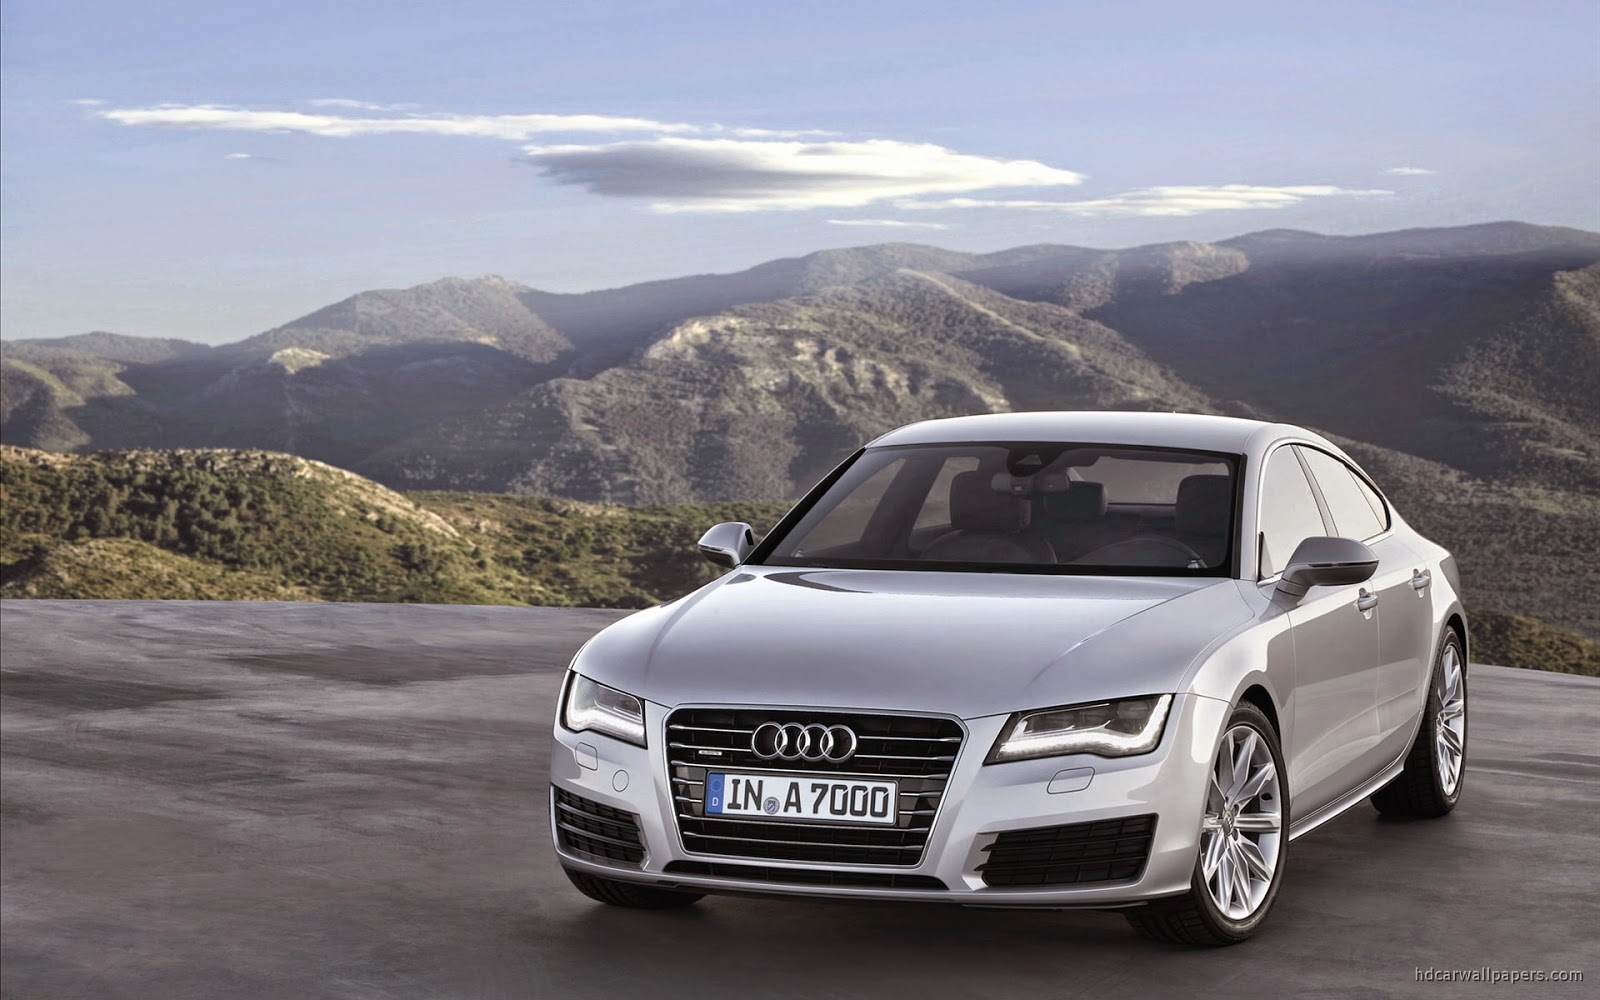 Audi Car Hd Wallpapers Hd Wallpapers High Quality Wallpapers